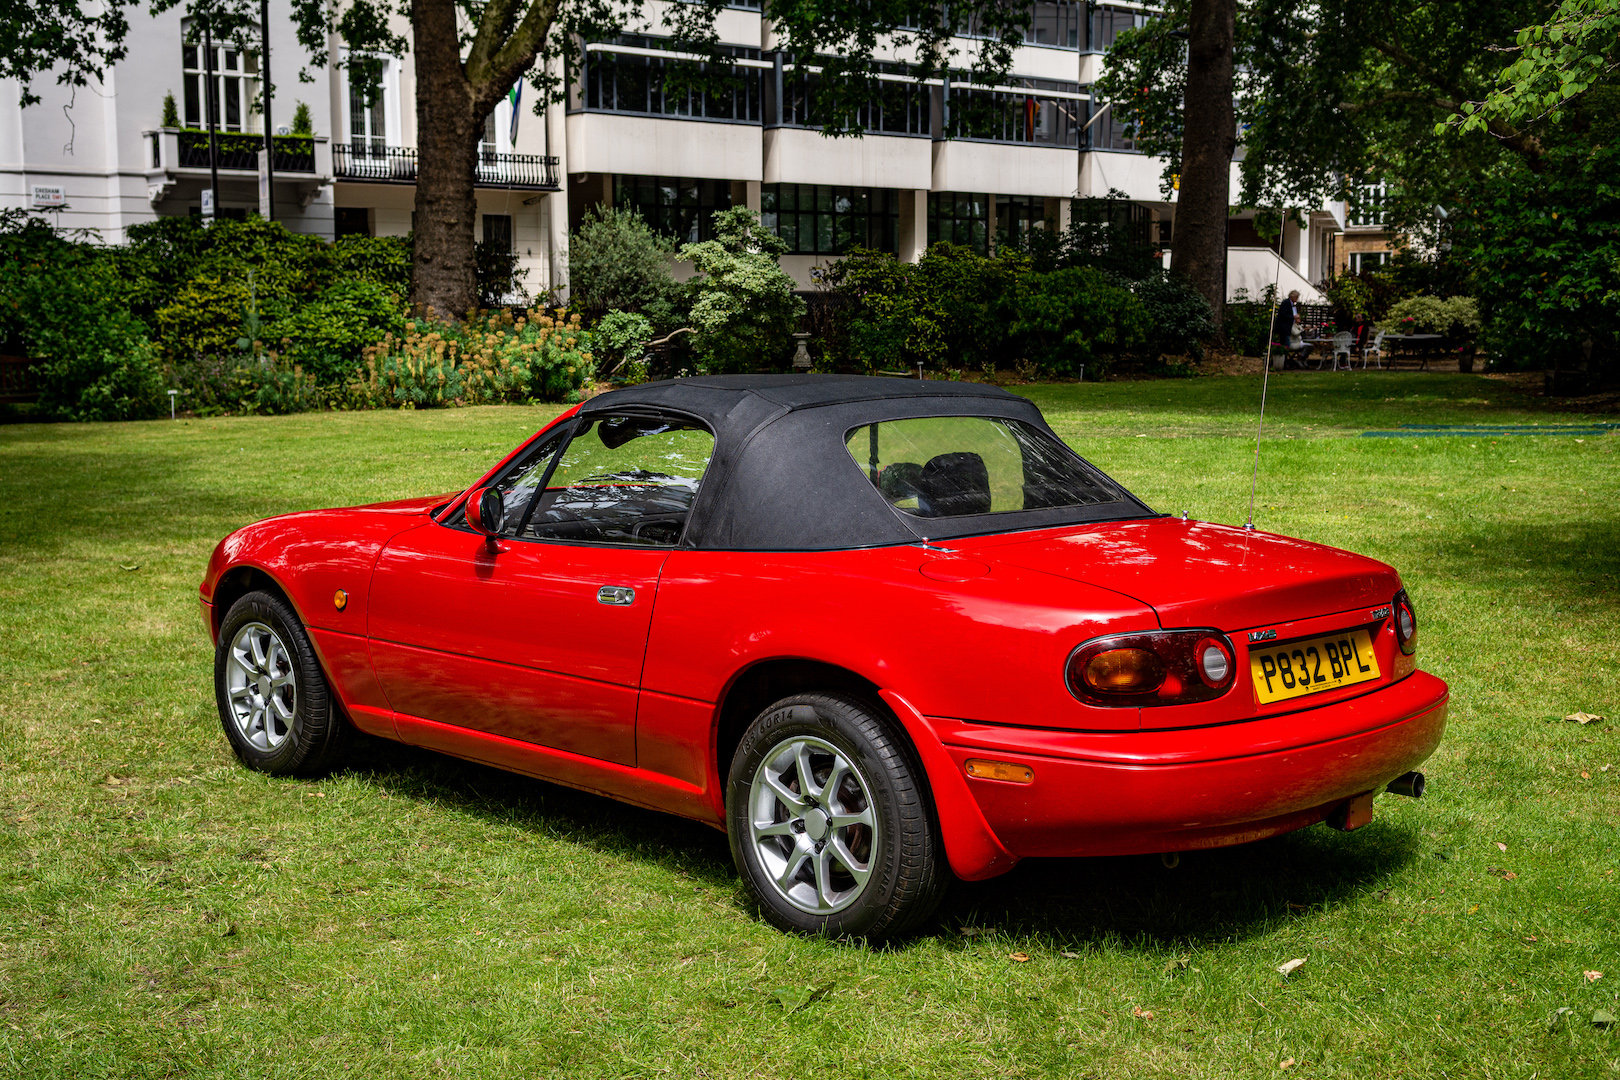 1996 Newly-restored Mazda MX5 Mk 1, low mileage for age For Sale (picture 6 of 6)